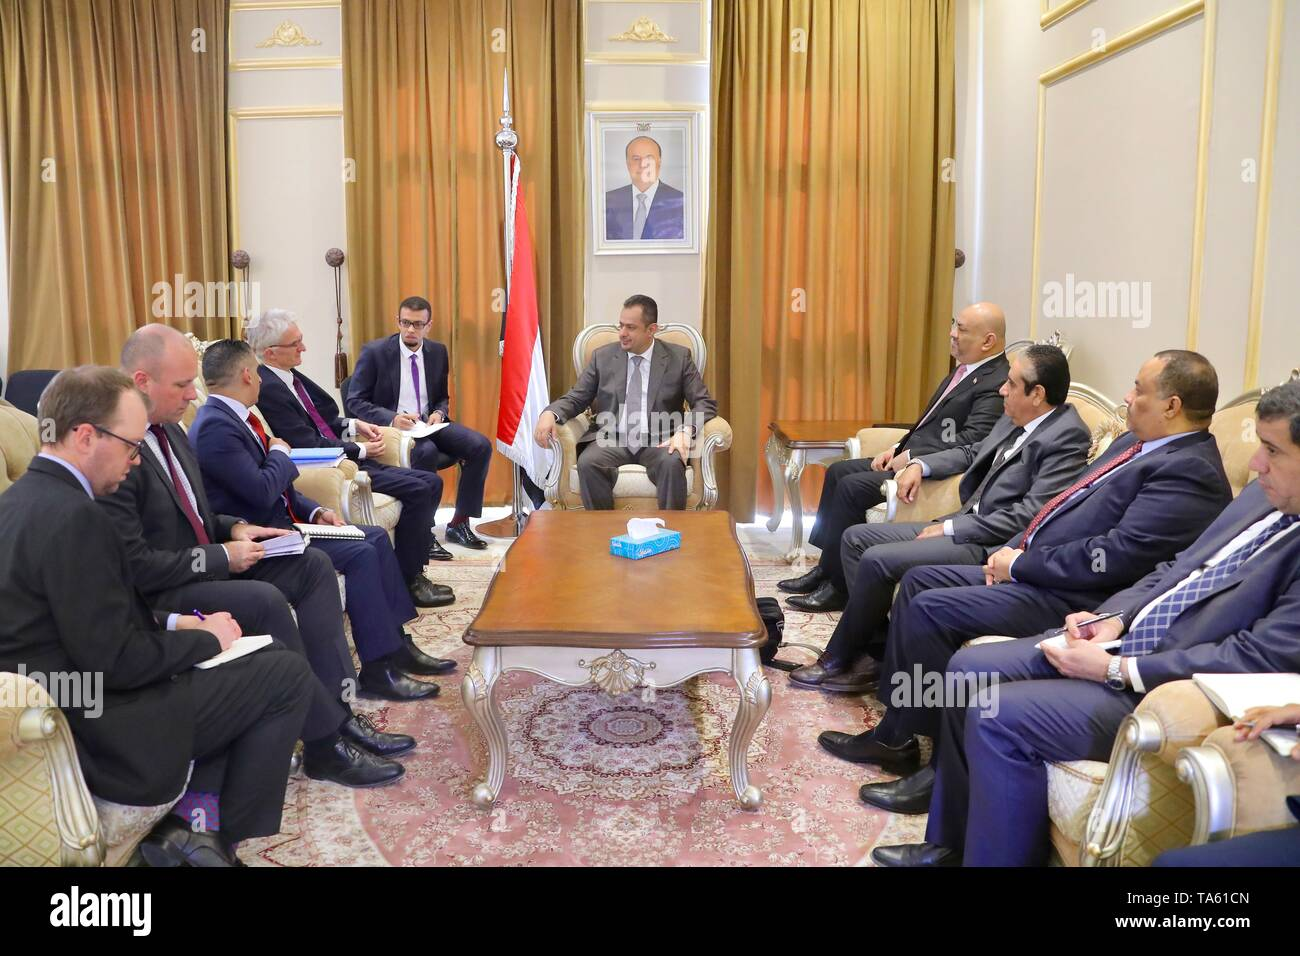 Riyadh. 22nd May, 2019. Yemen's Prime Minister Maeen Abdulmalik (C) holds a meeting with UN Under-Secretary-General for Humanitarian Affairs and Emergency Relief Coordinator Mark Lowcock (4th L) in Riyadh, Saudi Arabia on May 21, 2019 to discuss the mechanism for delivering humanitarian aid in Yemen. Yemen's government on Tuesday praised the 'courage and responsibility' of the World Food Program (WFP), which warned that aid distribution could be suspended in the Houthi-controlled areas due to lack of cooperation from the rebel group. Credit: Xinhua/Alamy Live News - Stock Image